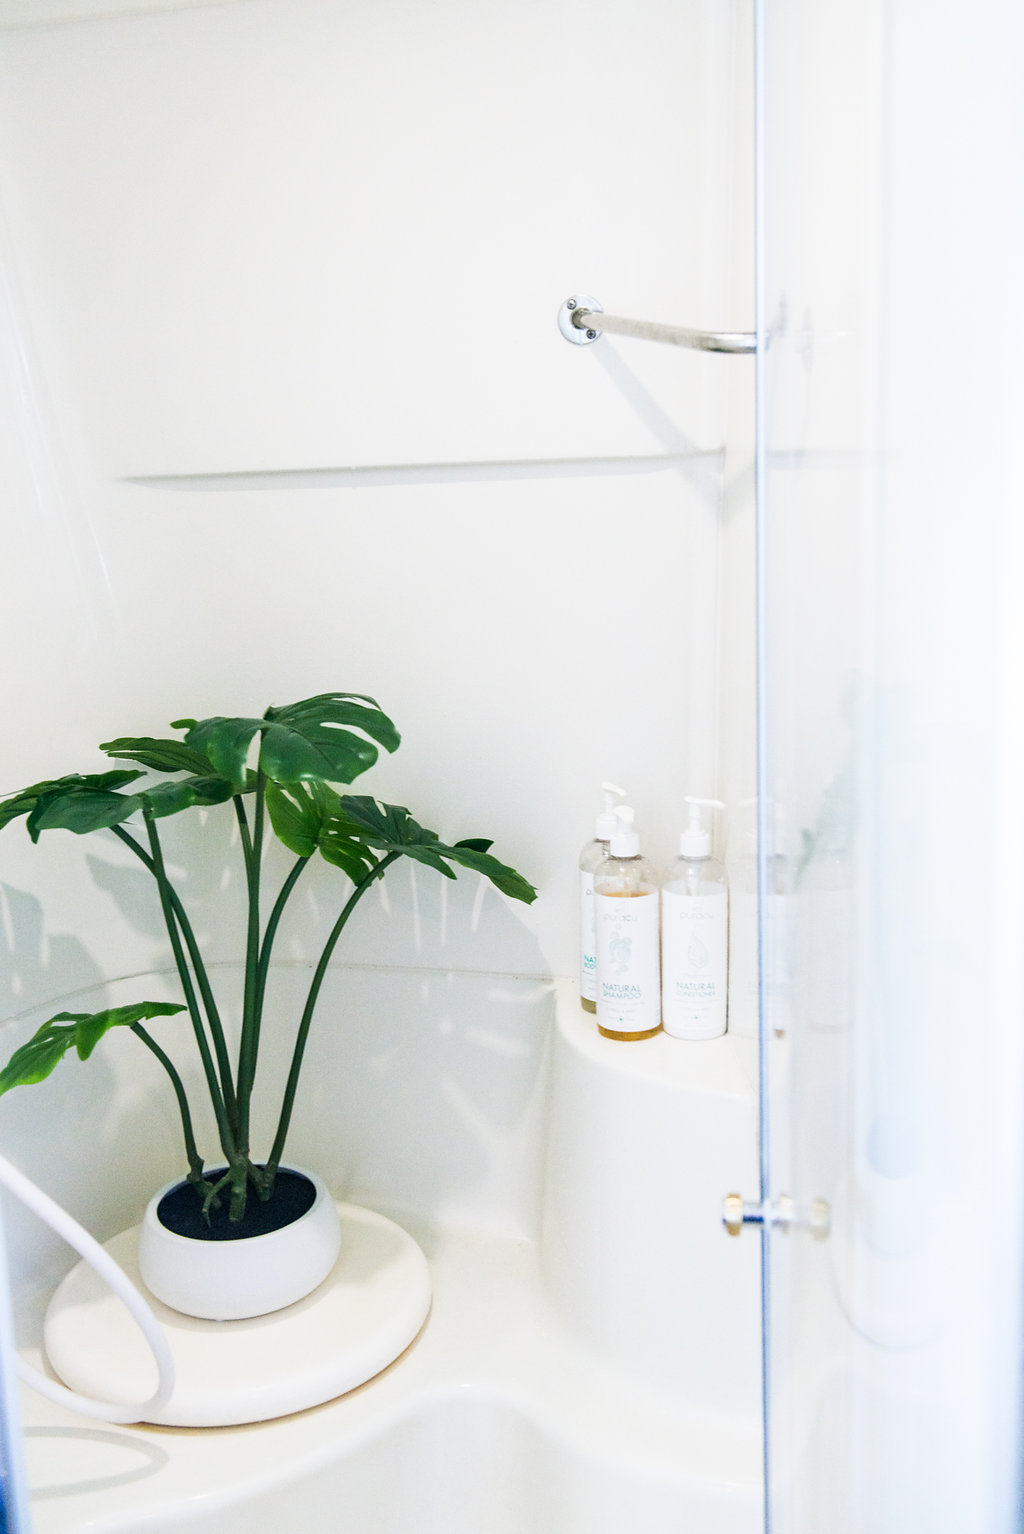 Our shower is surprisingly roomy. But you can't get too comfortable in there - the water heater only heats up about 15 minutes' worth of hot water at a time.